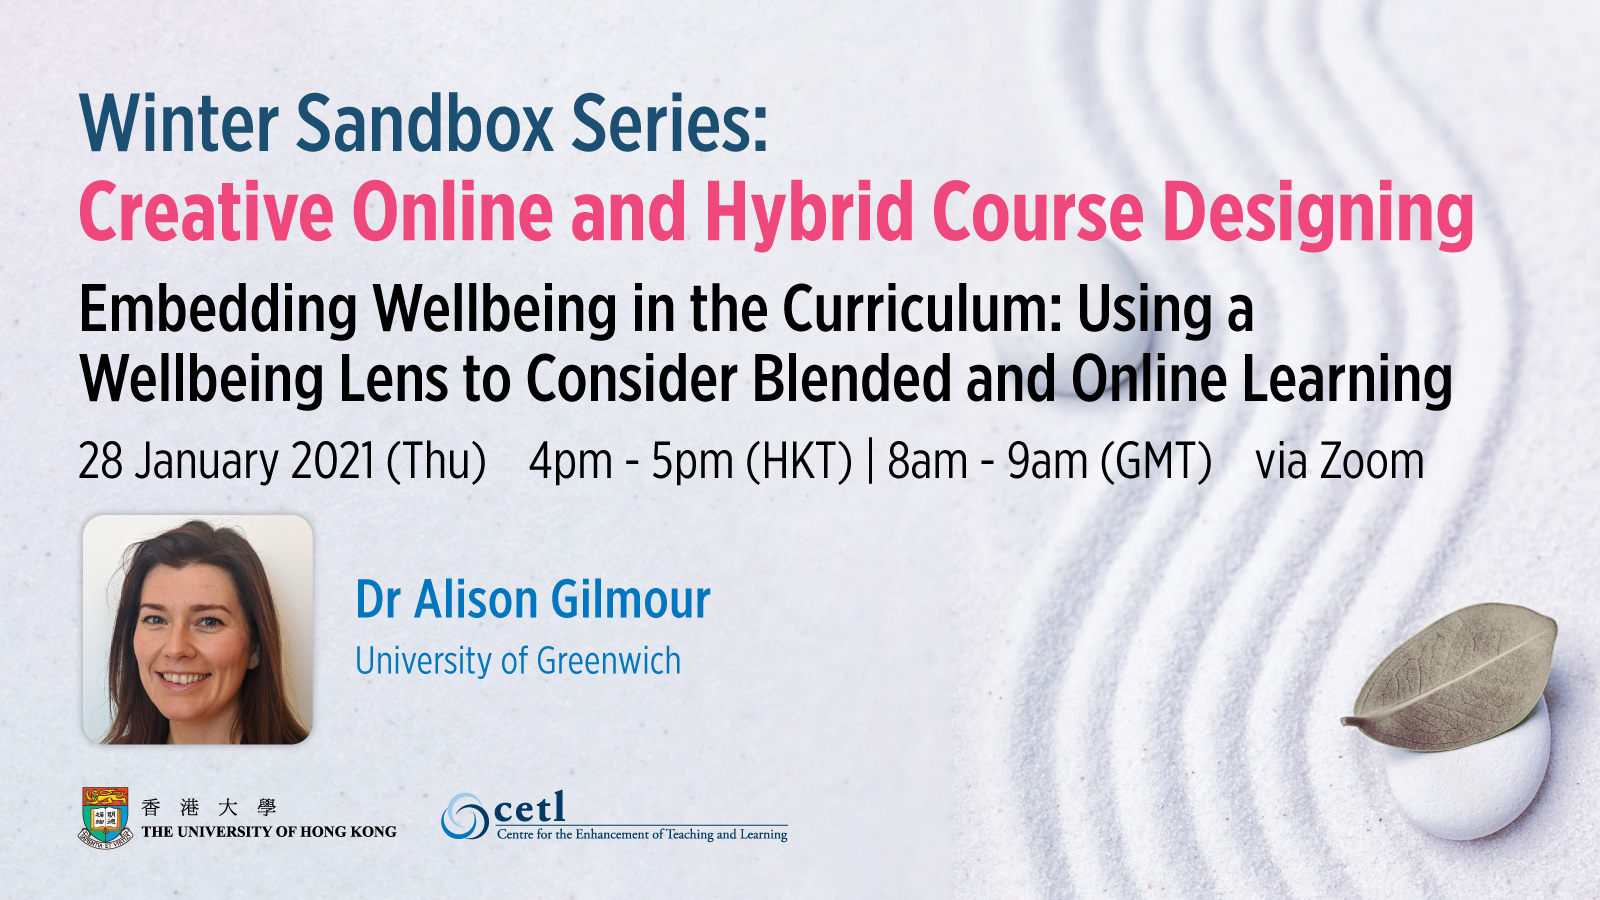 Session 6: Embedding wellbeing in the curriculum: using a wellbeing lens to consider blended and online learning